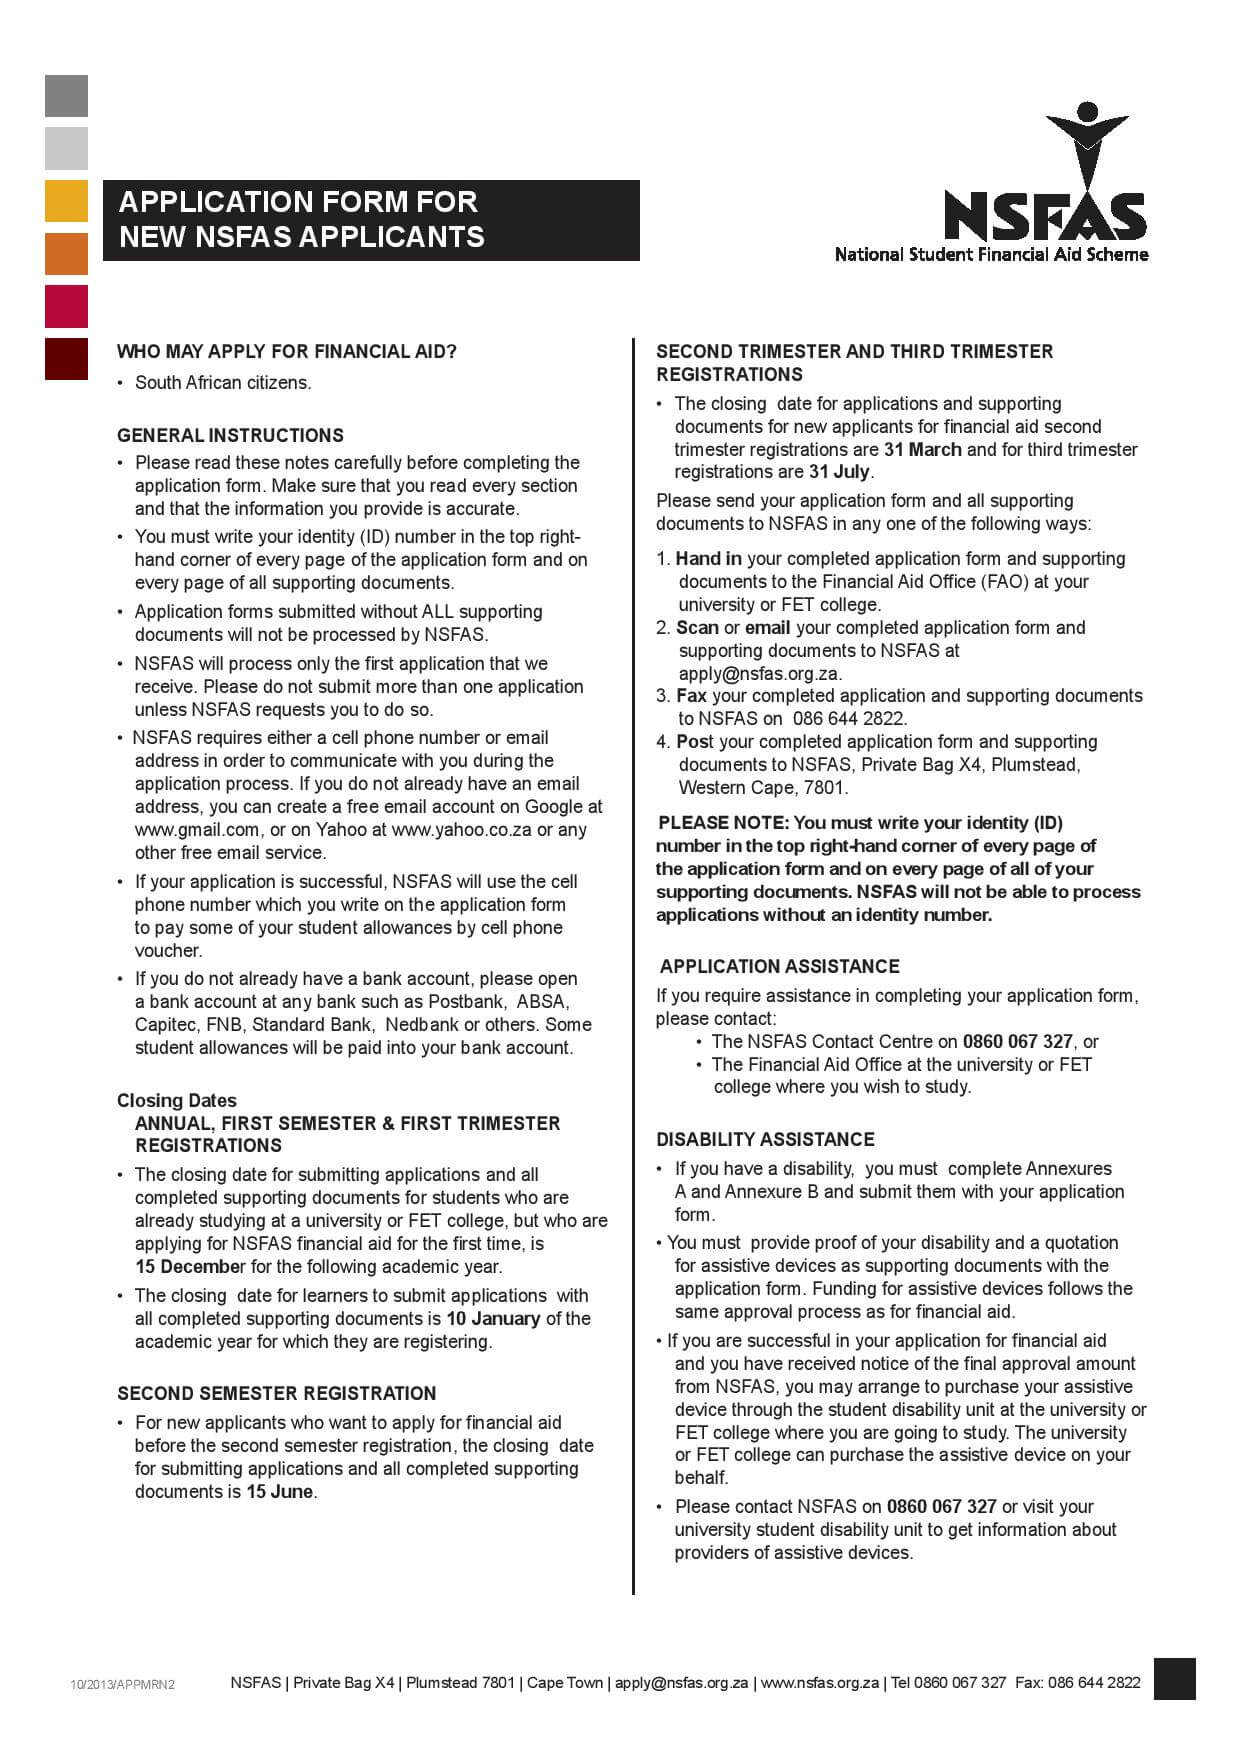 Download NSFAS Application Form - FormFactory on computer application, email application, delete application, microsoft application, references application, employment application, print application, complete application, internet application, user application, whatsapp application, career application, windows application, facebook application, client application, open application, design application, technology application, title application,